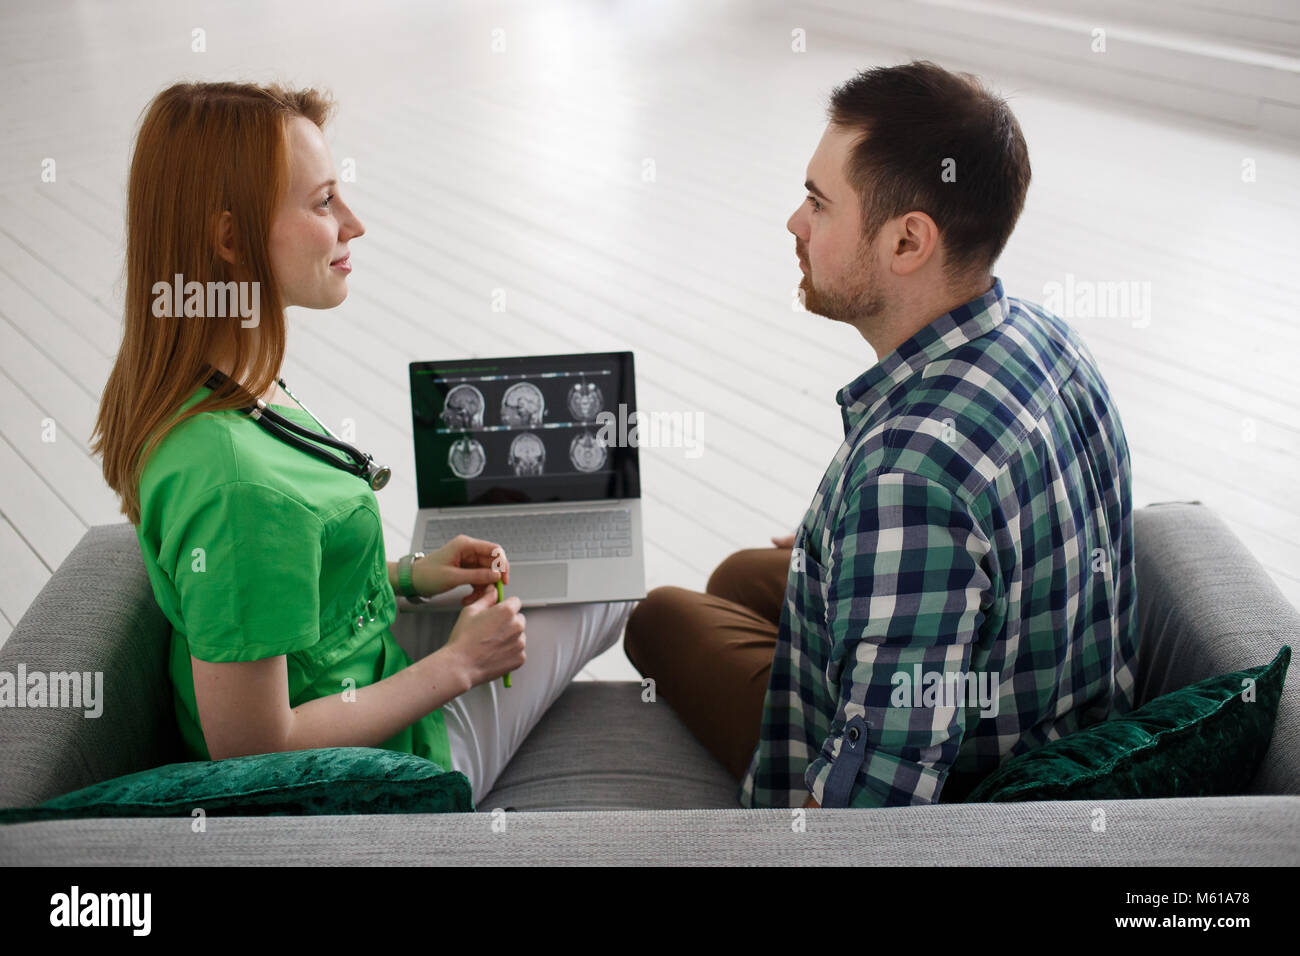 Female doctor and male patient looking at MRI concept healthcare, medical and radiology concept - Stock Image